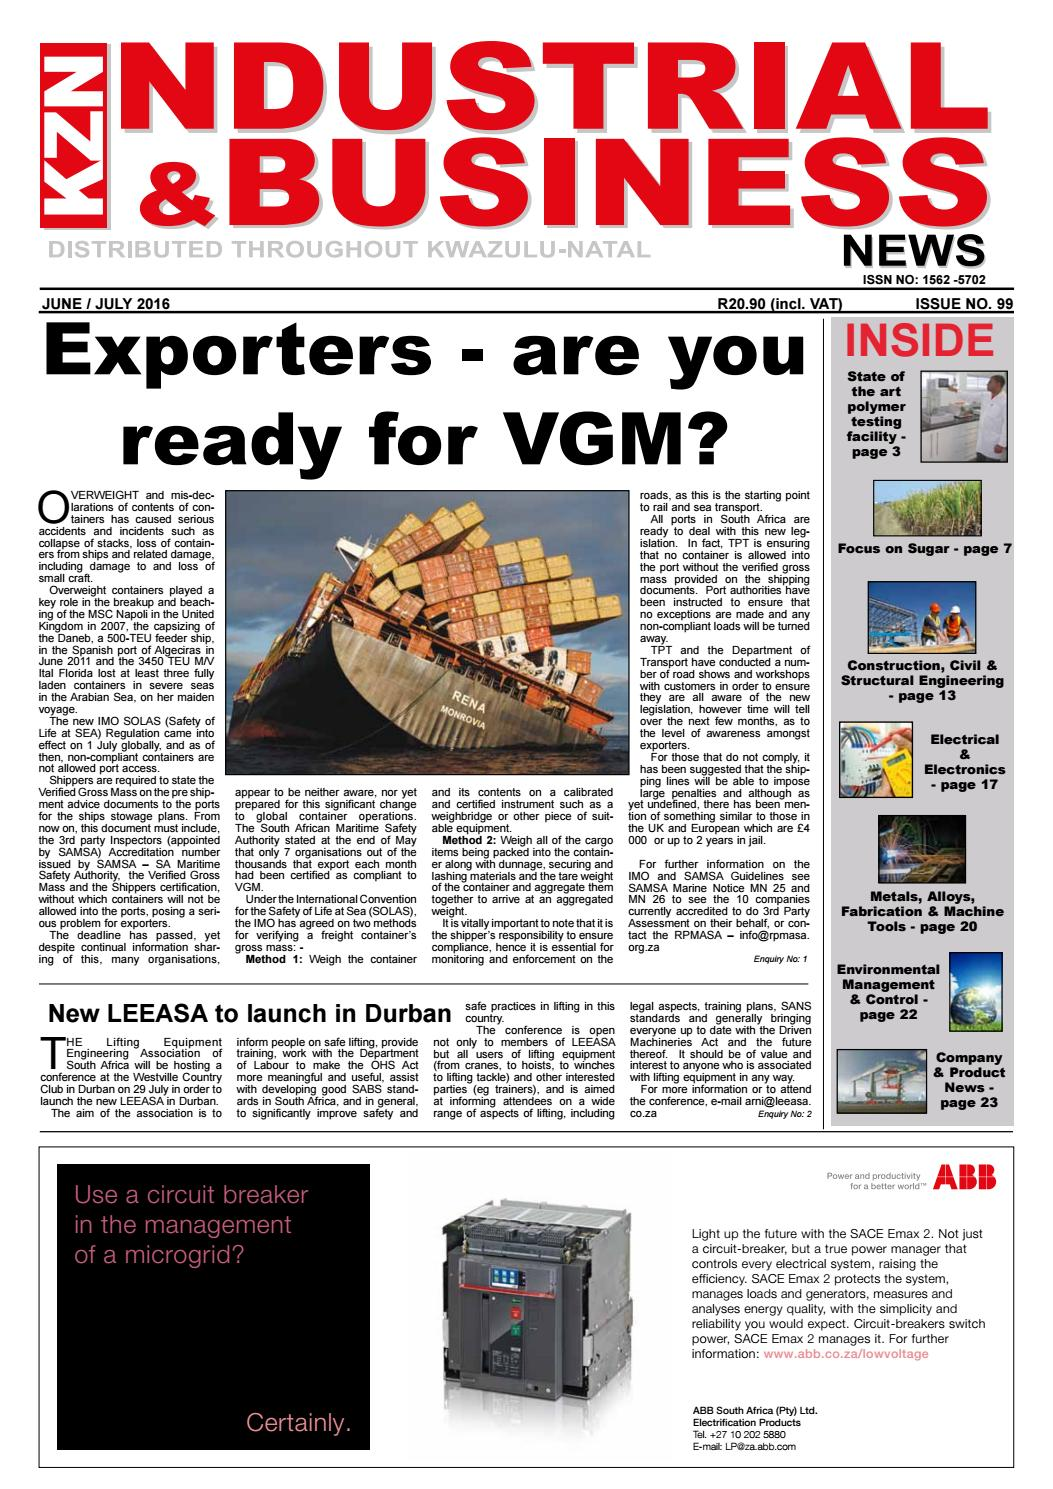 Kzn Industrial Business News Issue 99 Jj2016 By The Media Events Kinds Of Circuit Breakers For Protecting Illuminating Distributing Company Issuu